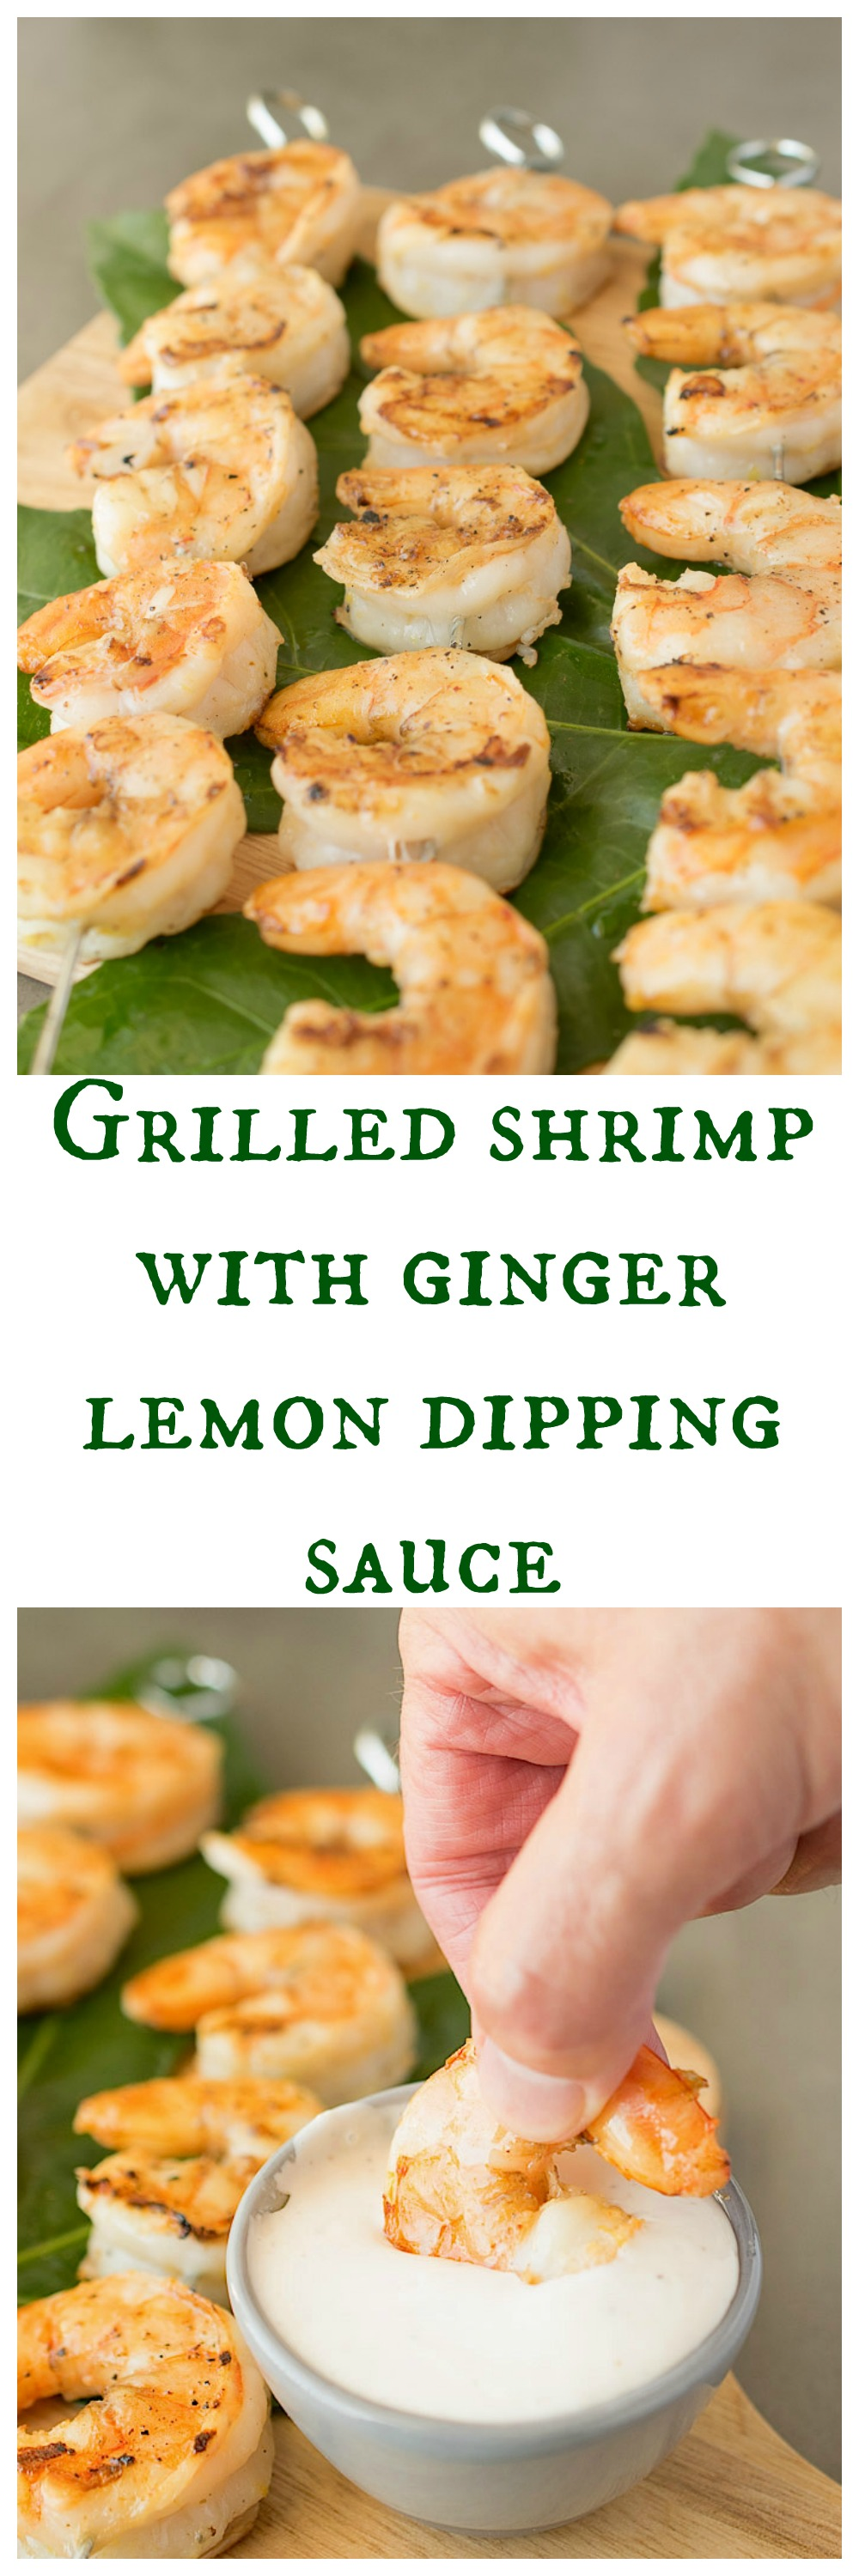 Grilled shrimp with ginger lemon dipping sauce - Culinary ...